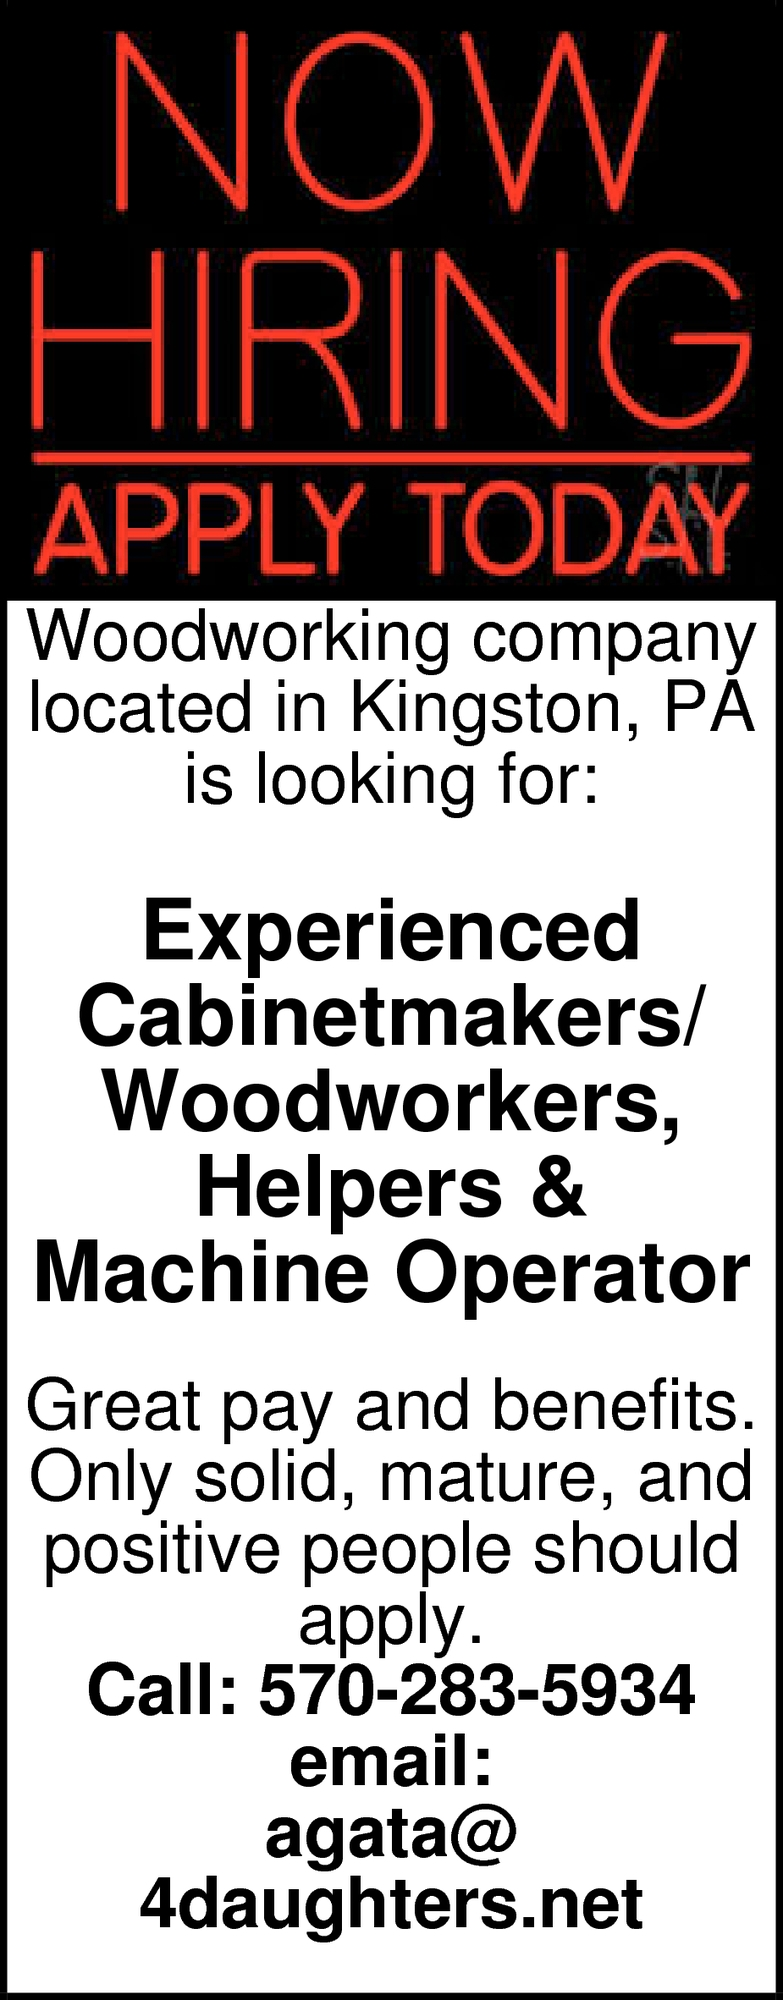 Experienced Cabinetmakers/ Woodworkers, Helpers & Machine Operator Wanted